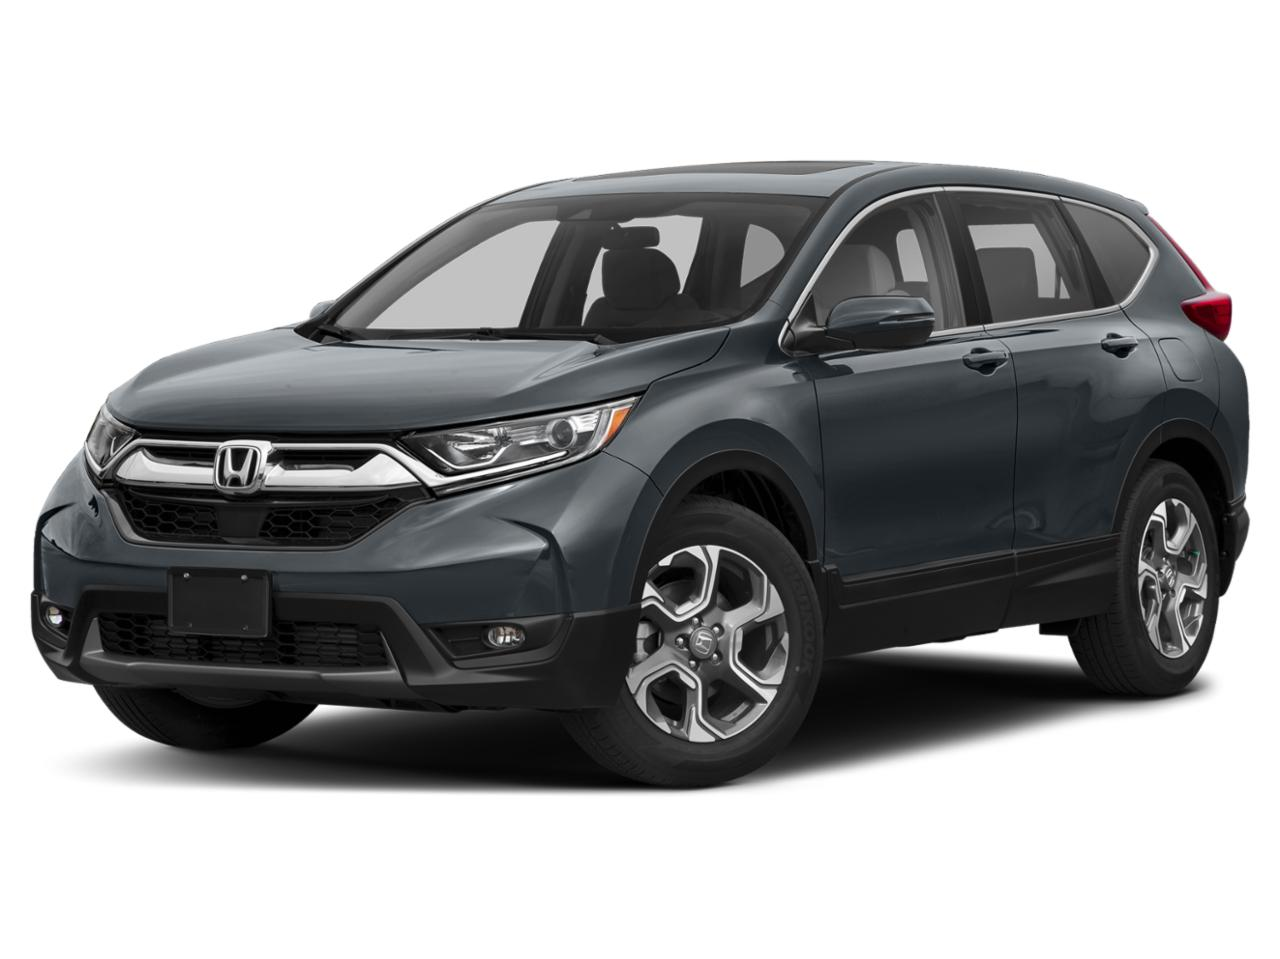 2019 Honda CR-V Vehicle Photo in Edinburg, TX 78539